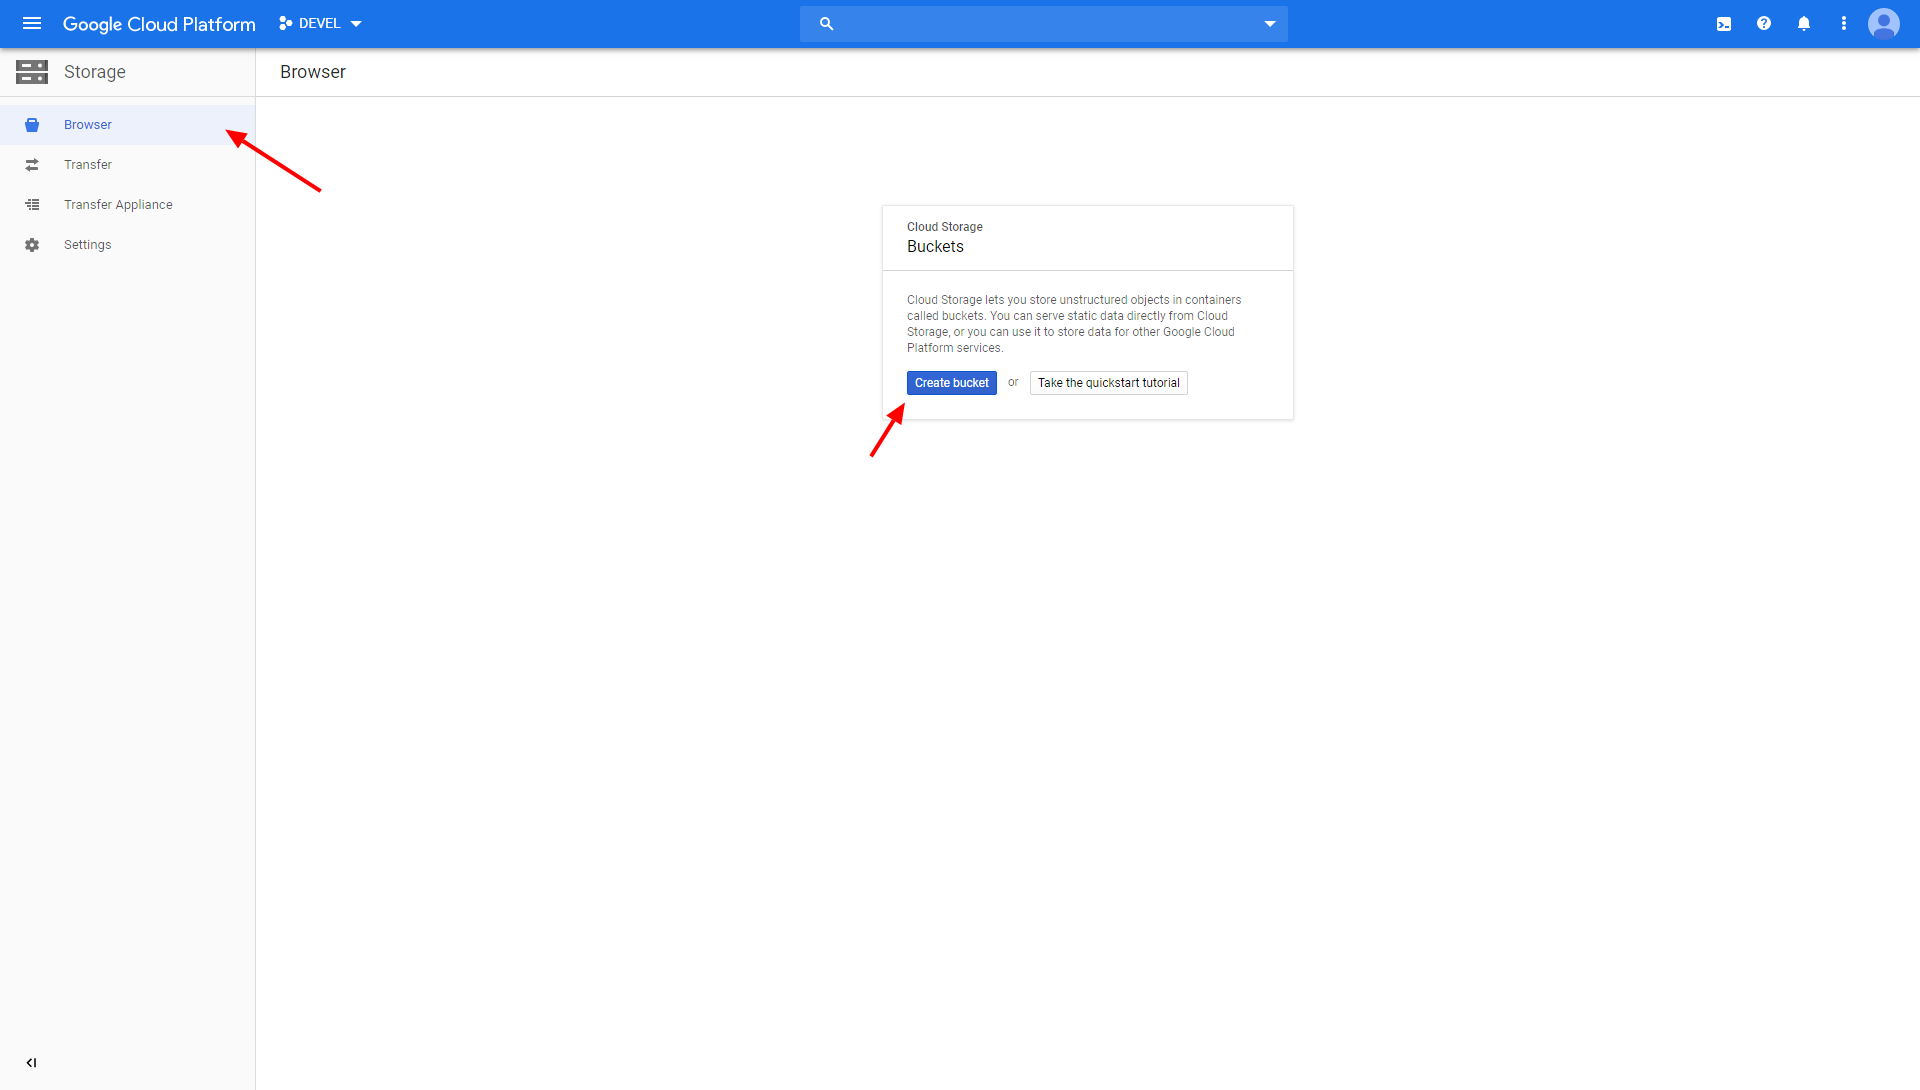 Screenshot - Google Cloud Platform